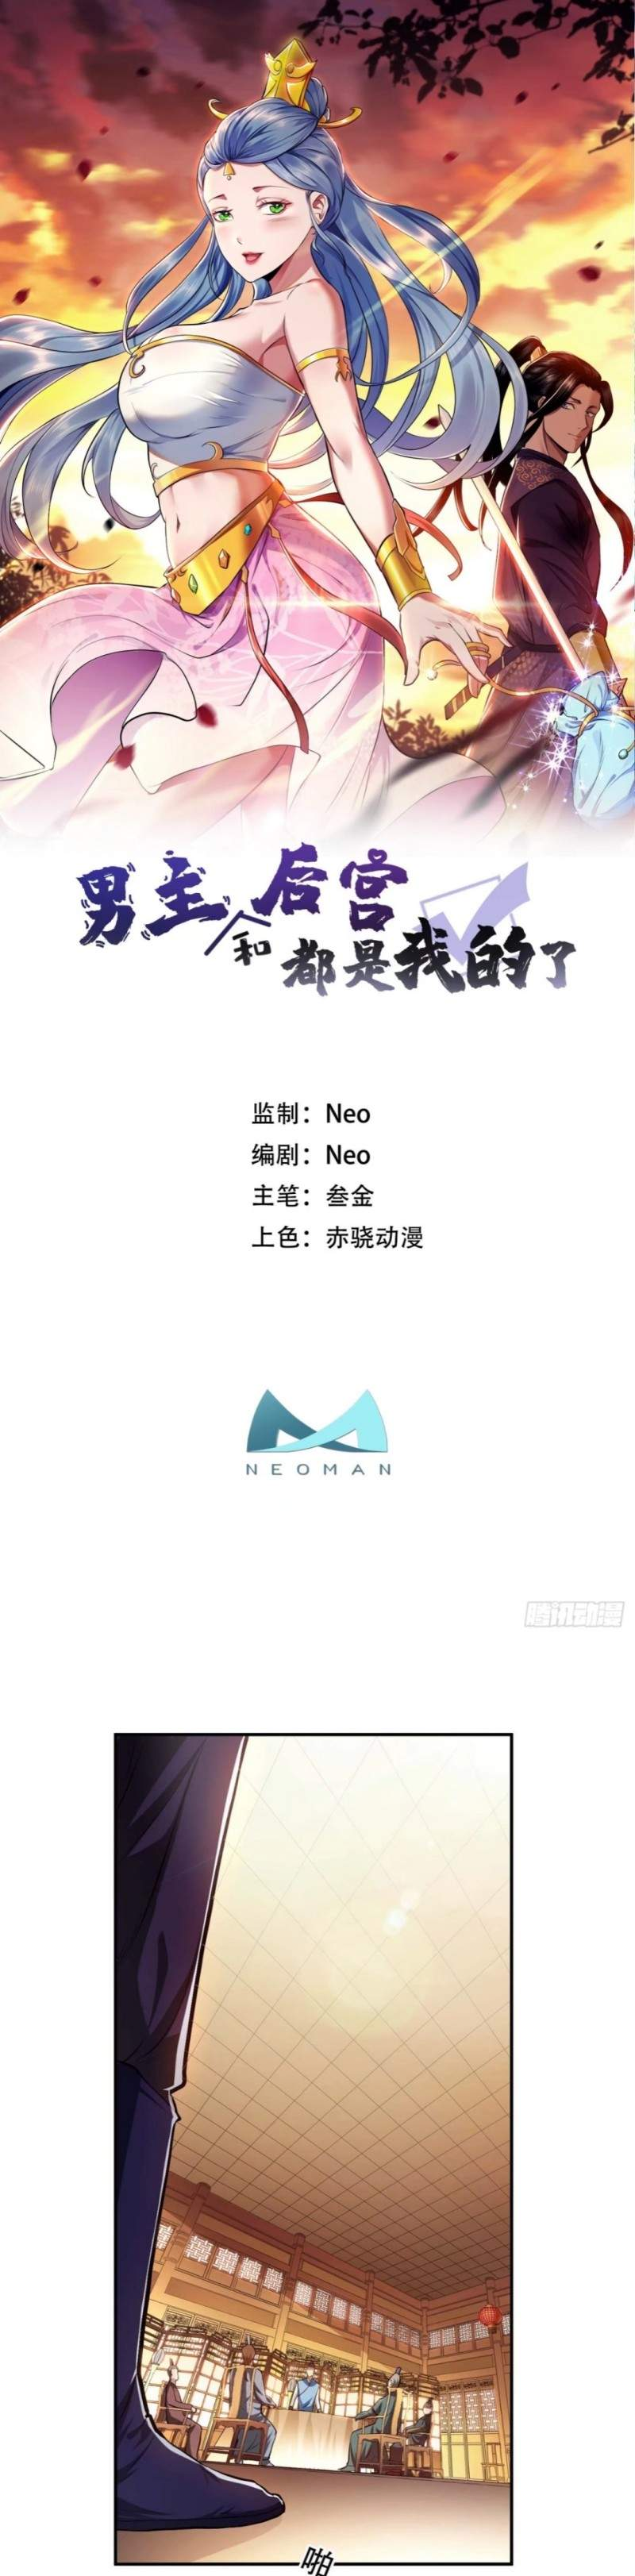 The Hero and The Harem are Mine Now Chapter 06